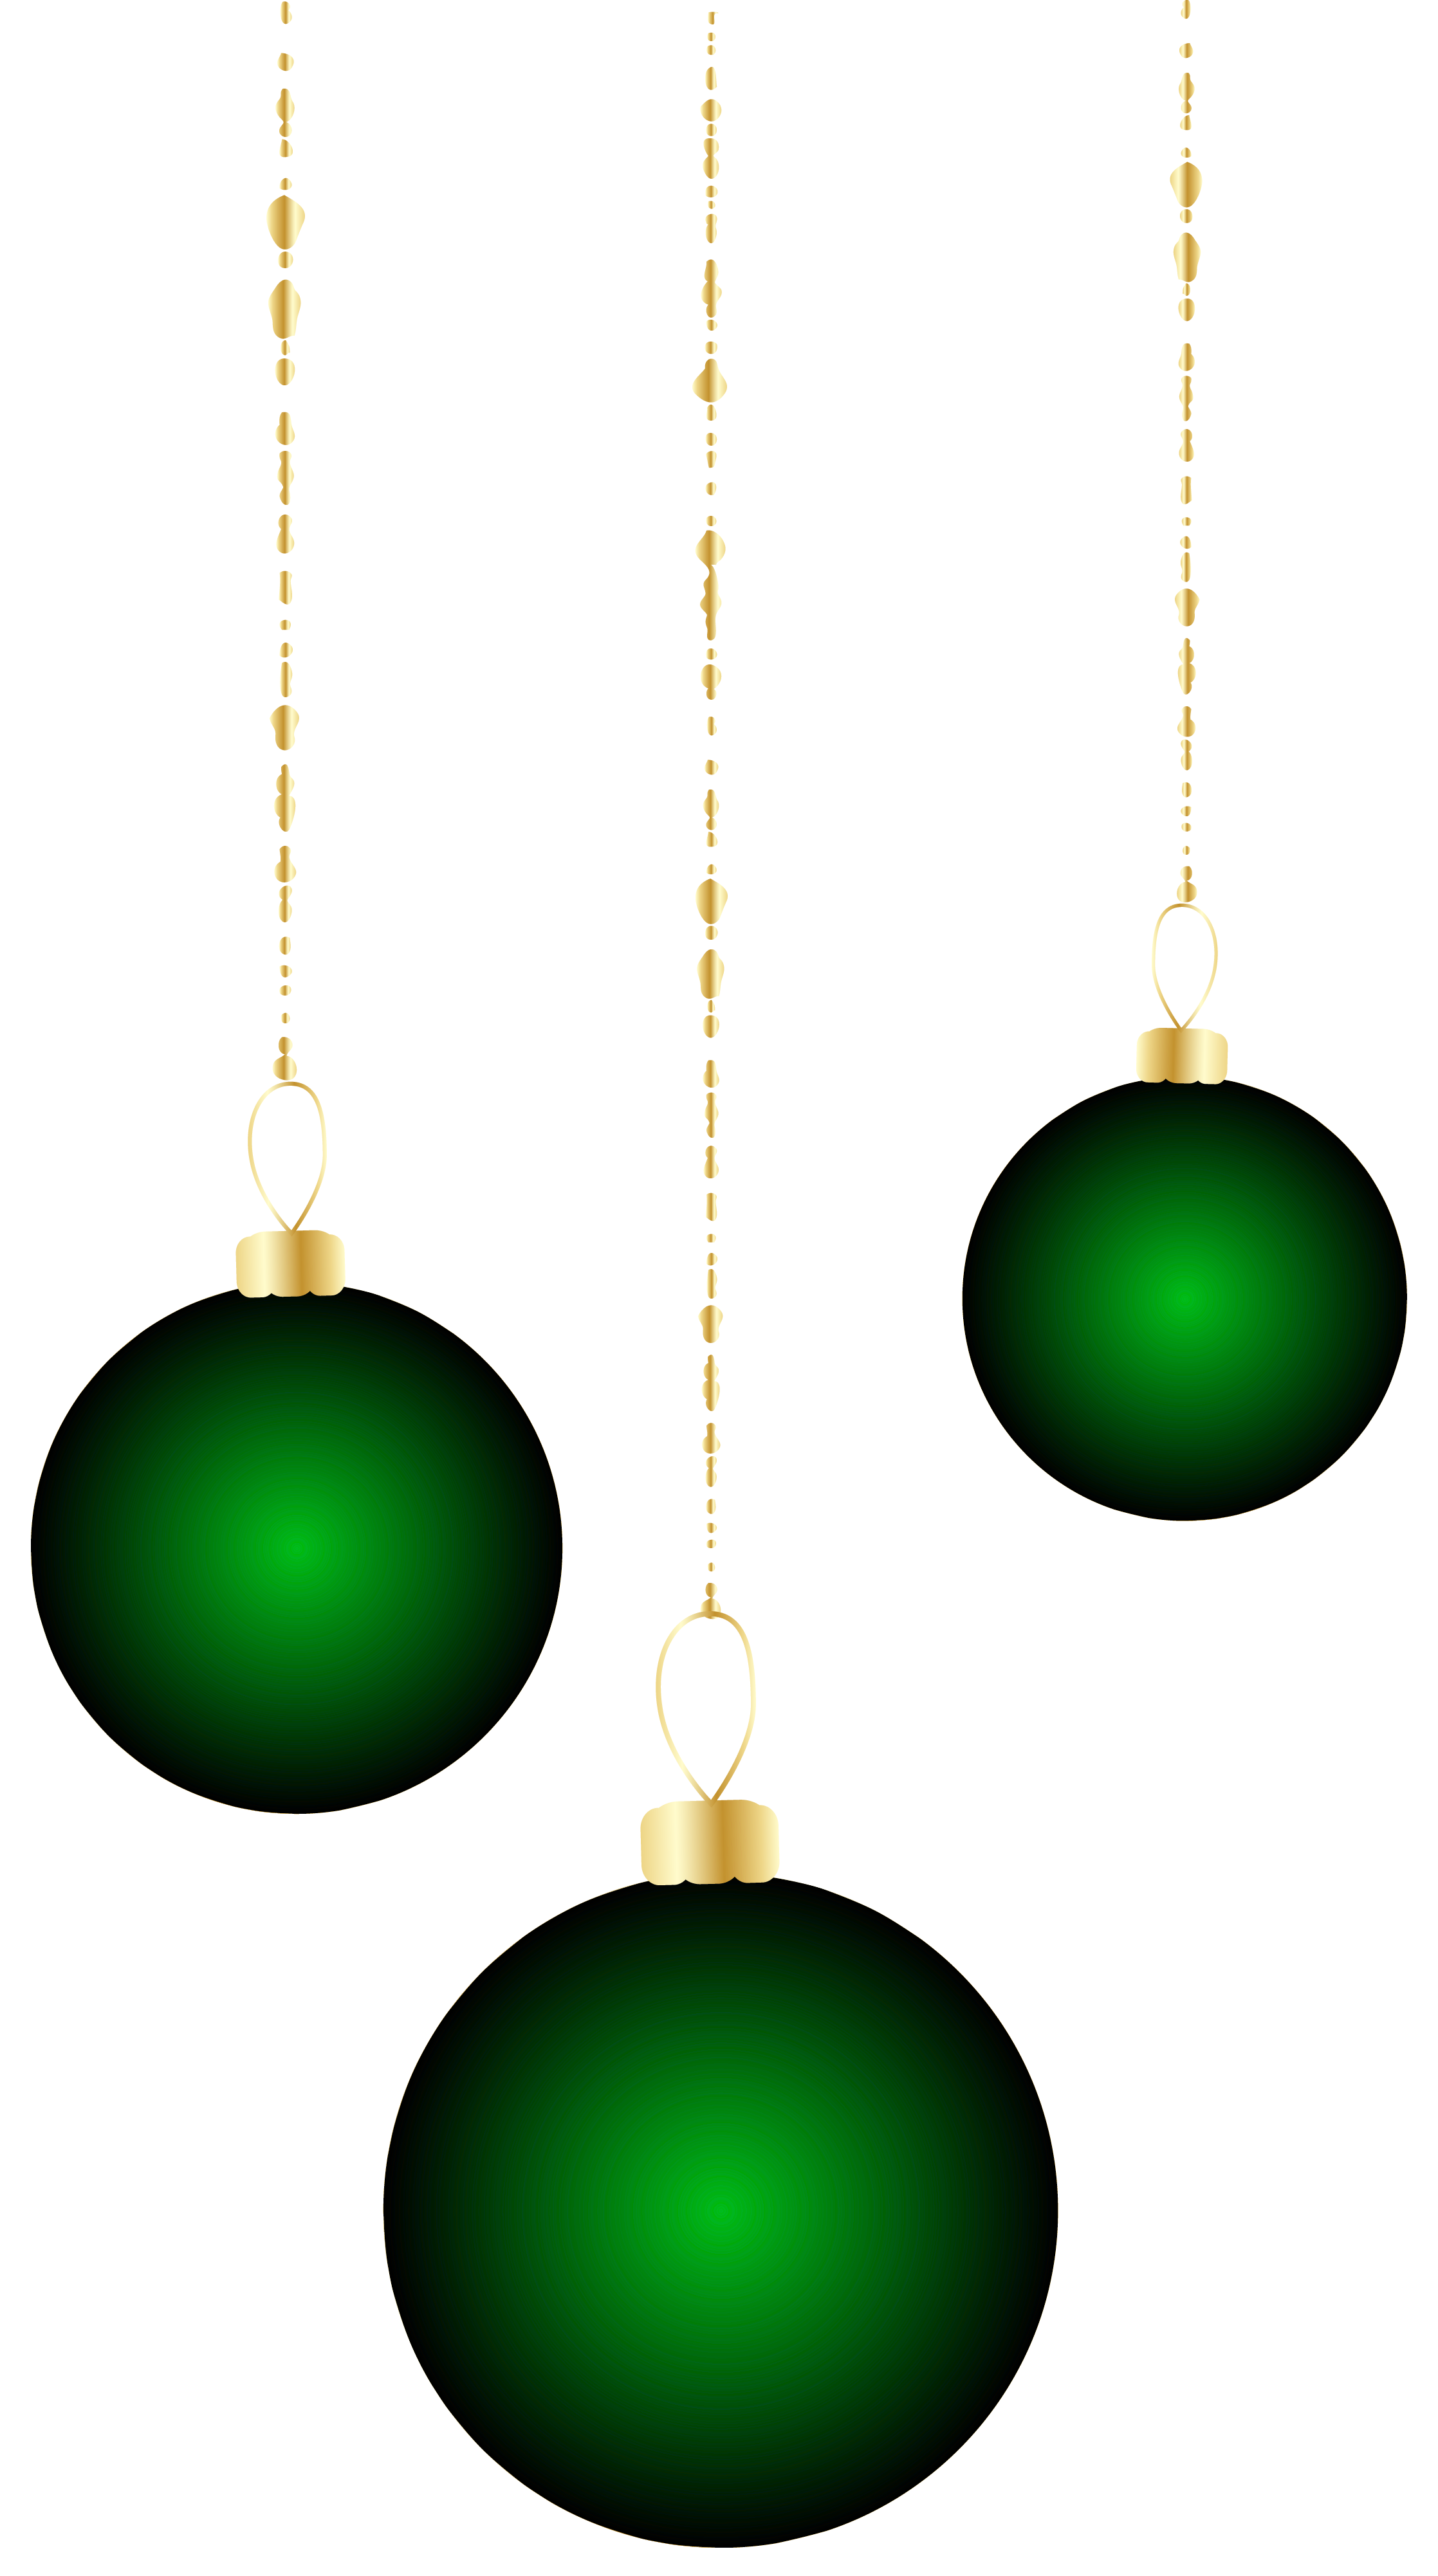 Tree ornaments clipart svg download Transparent Christmas Green Ornaments PNG Clipart | Gallery ... svg download